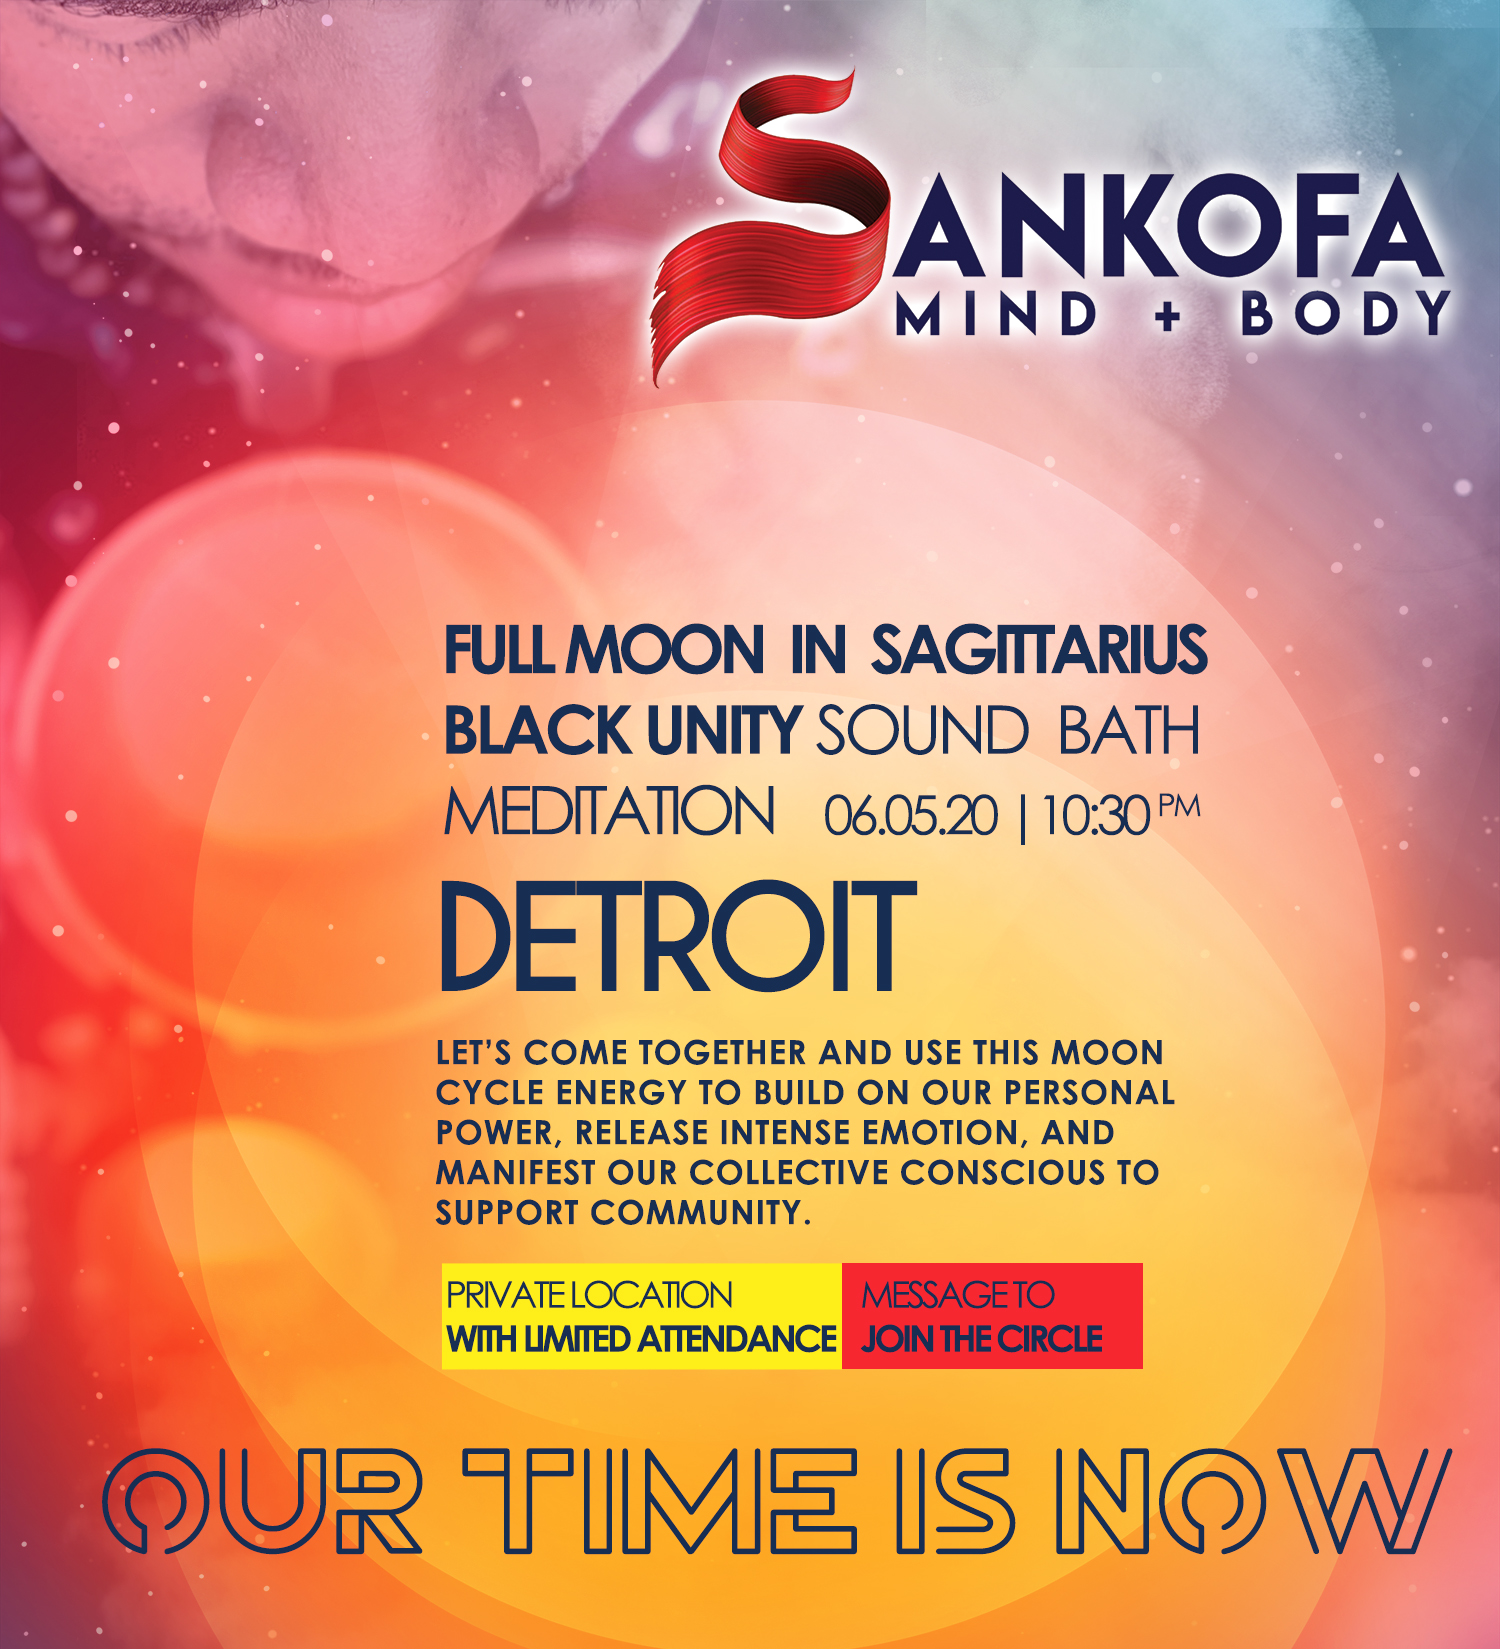 Full Moon in Sagittarius Sound Bath Meditation!